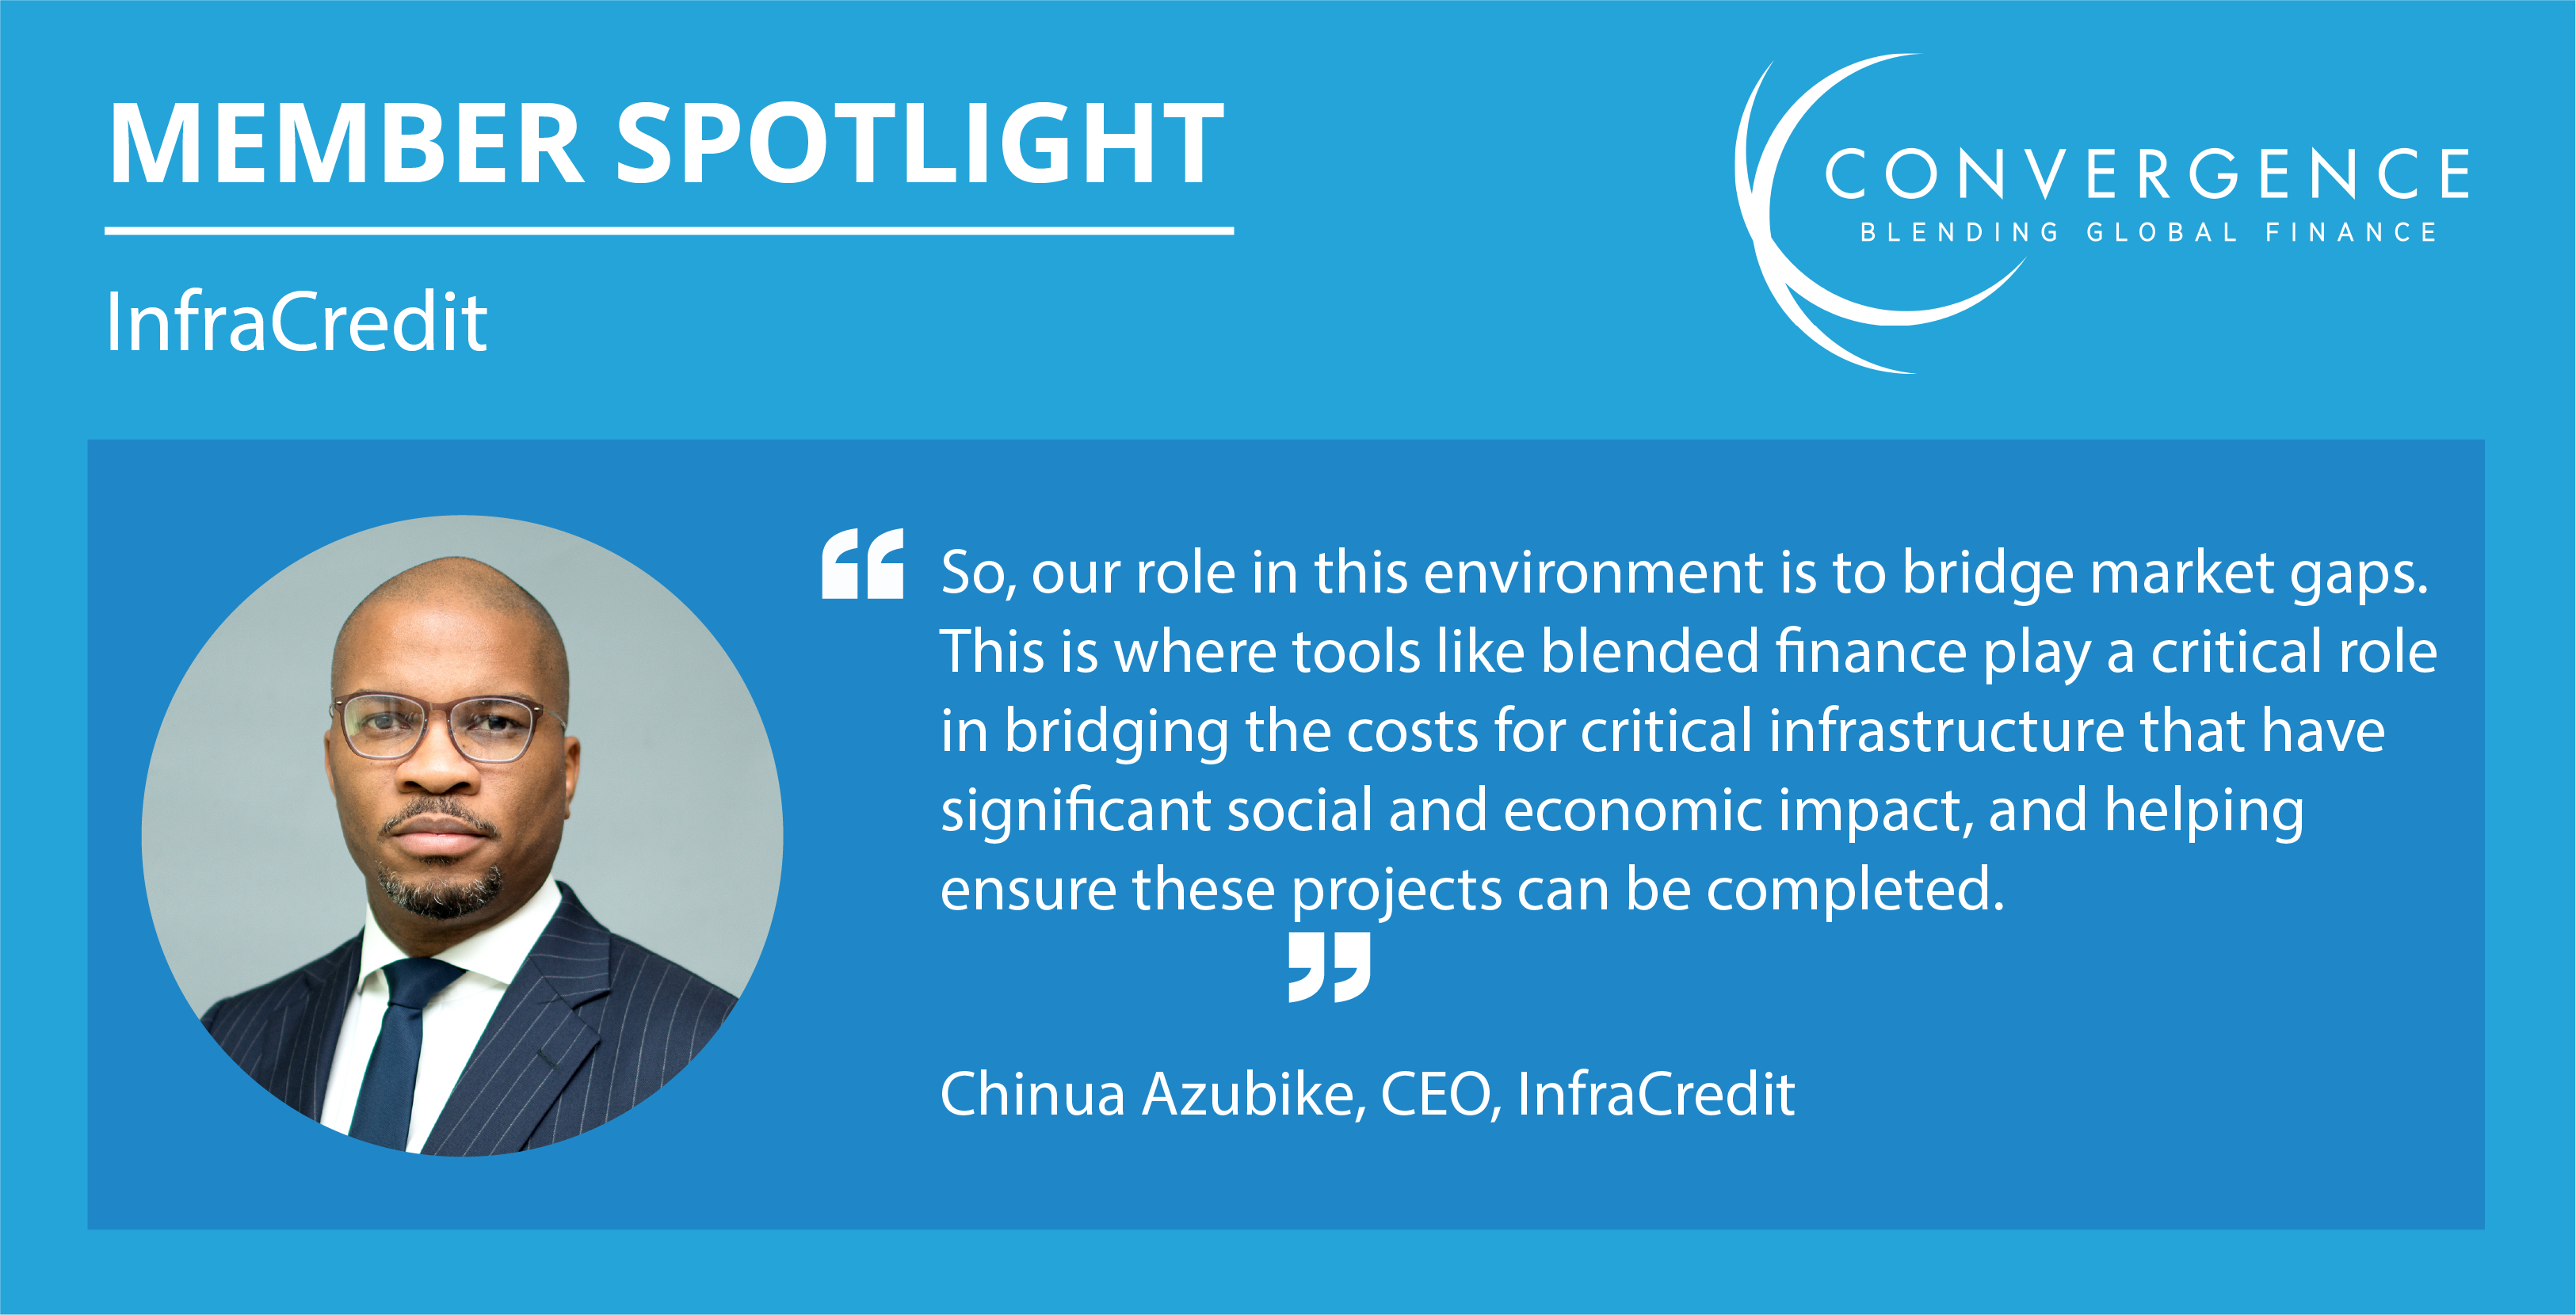 Member spotlight with Chinua Azubike of InfraCredit